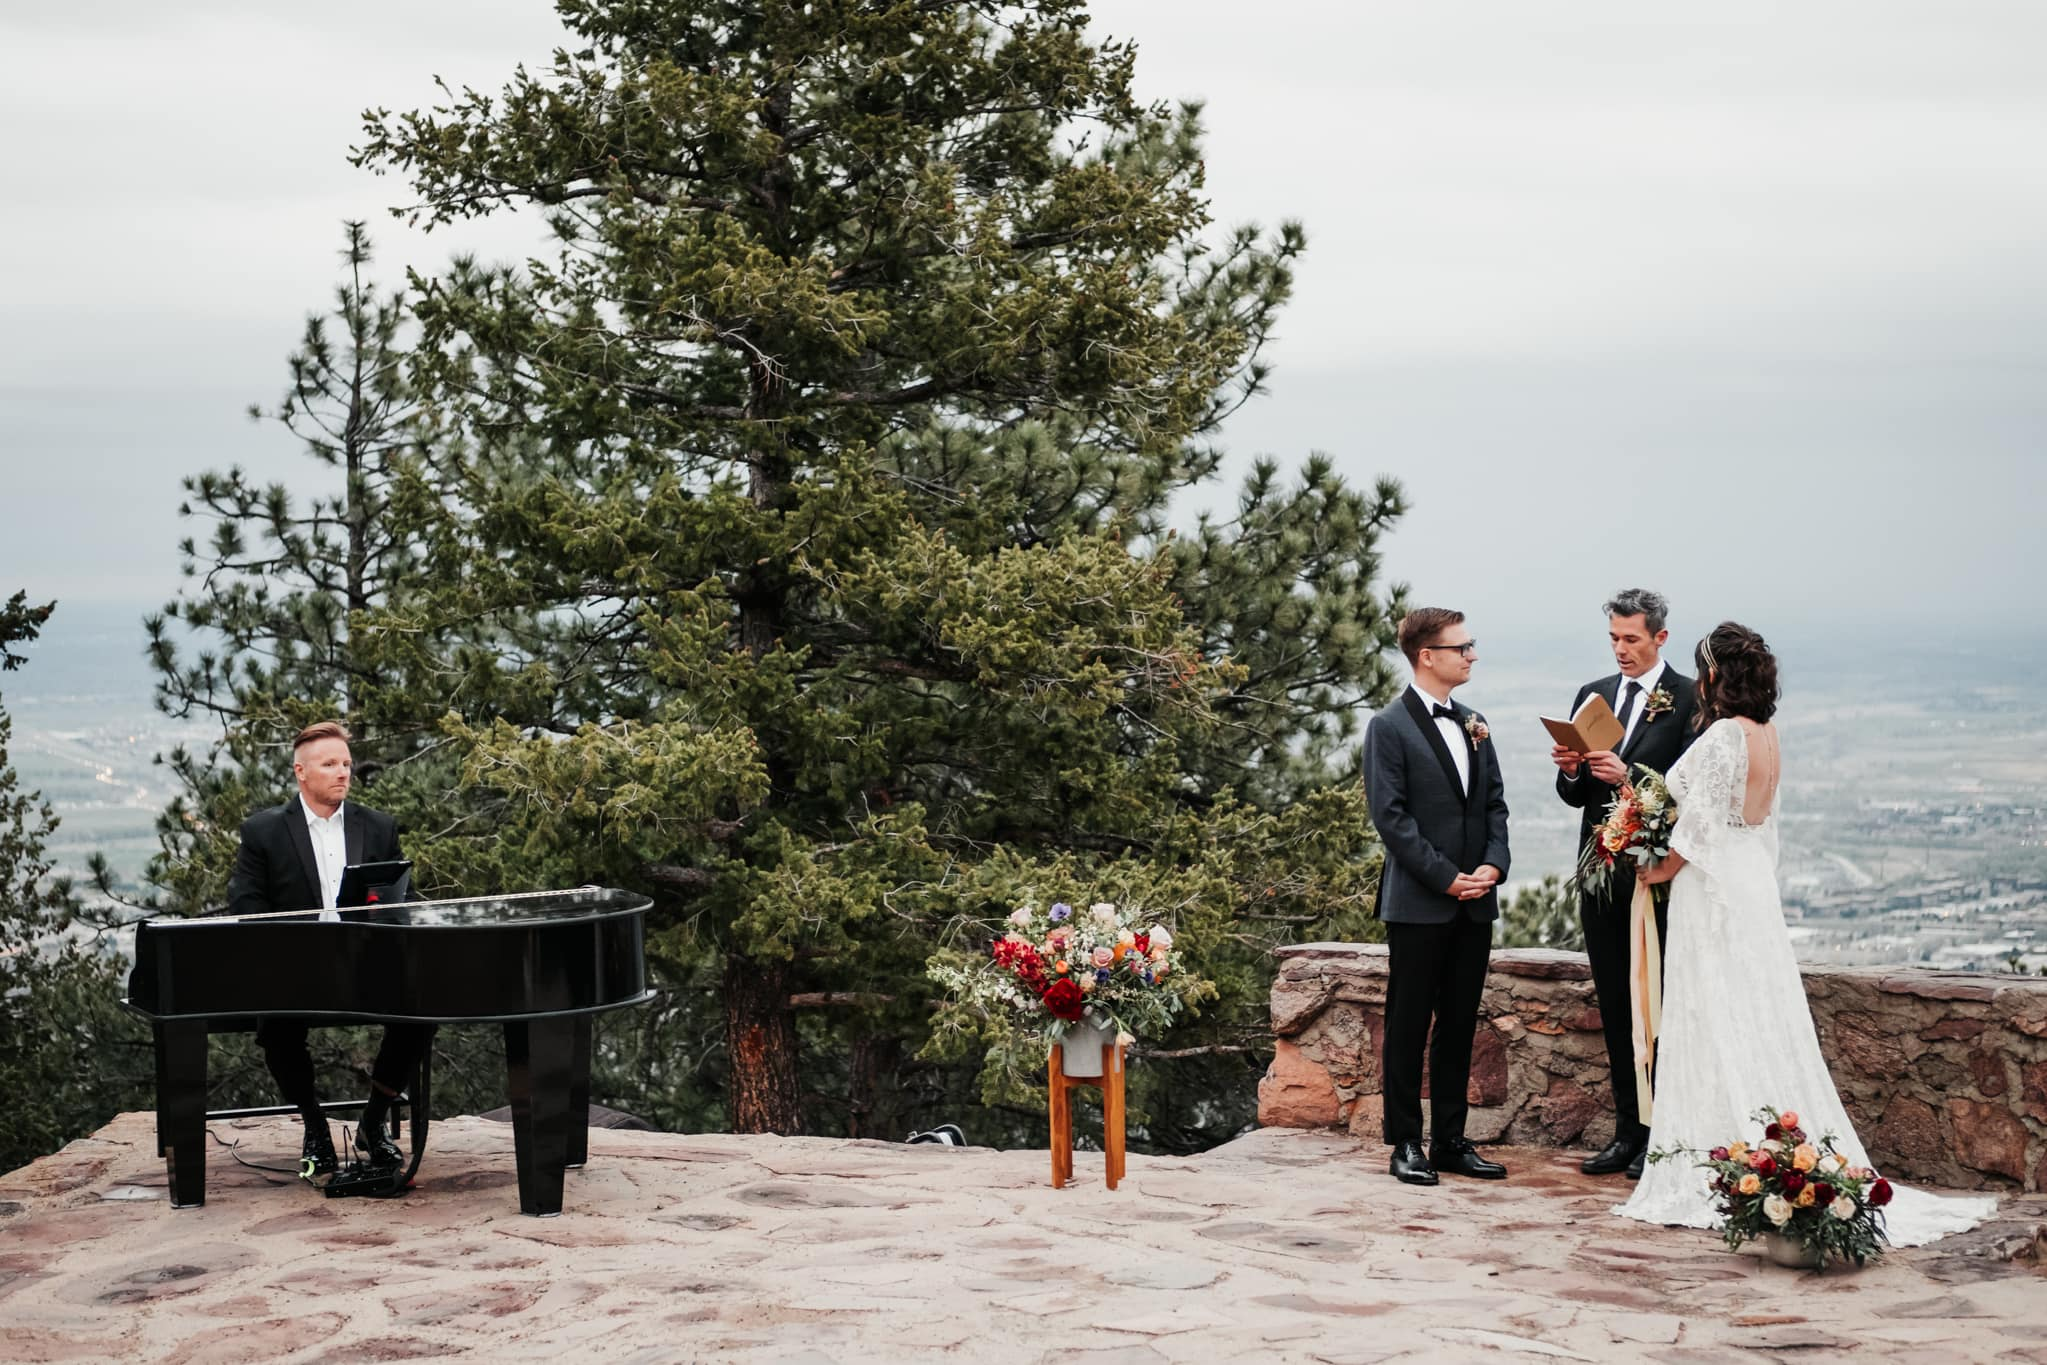 Sunrise Amphitheater Elopement, Flagstaff Boulder Colorado wedding photographer